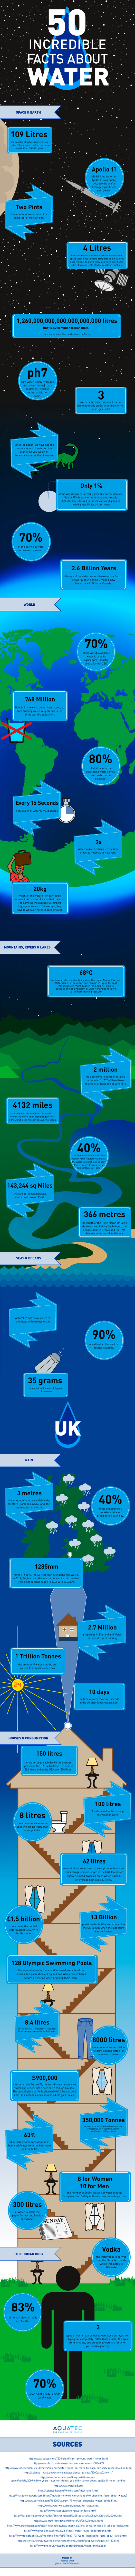 50 Incredible Facts About Water